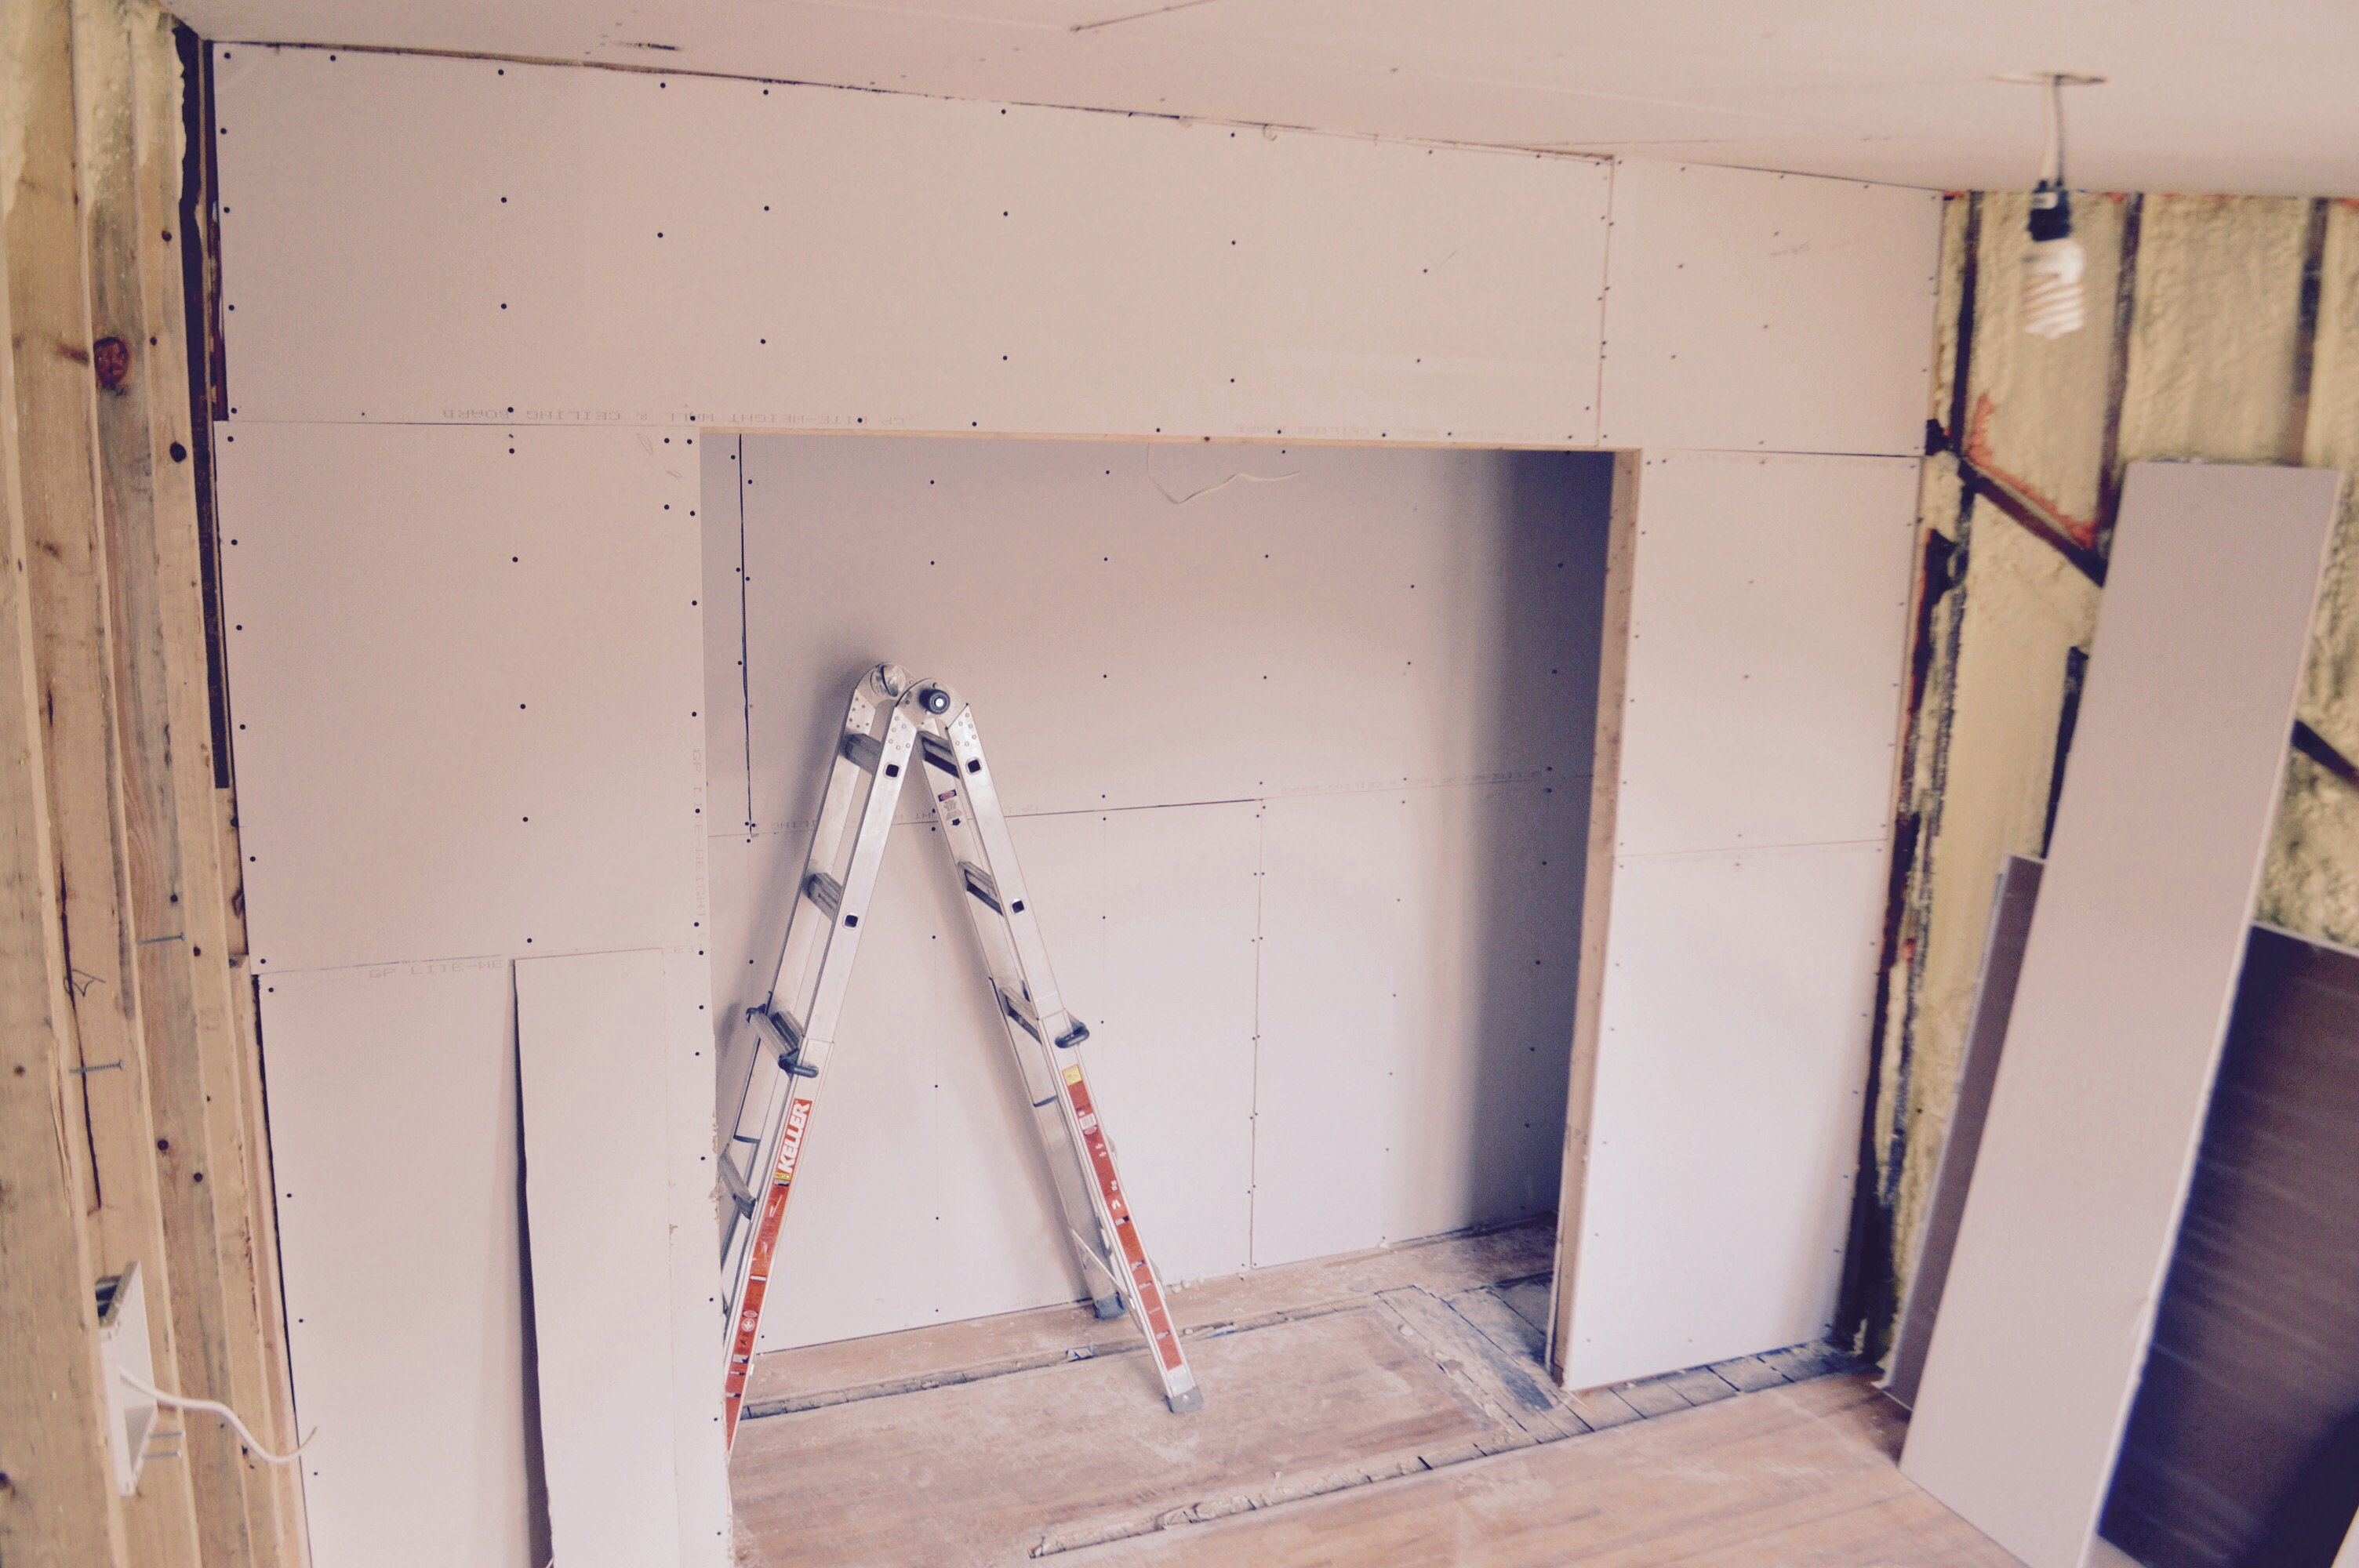 How to hang drywall on walls - We Are Prepping The Stairwell Area To Make A Seamless Transition Between The Old Plaster Walls And The New Drywall